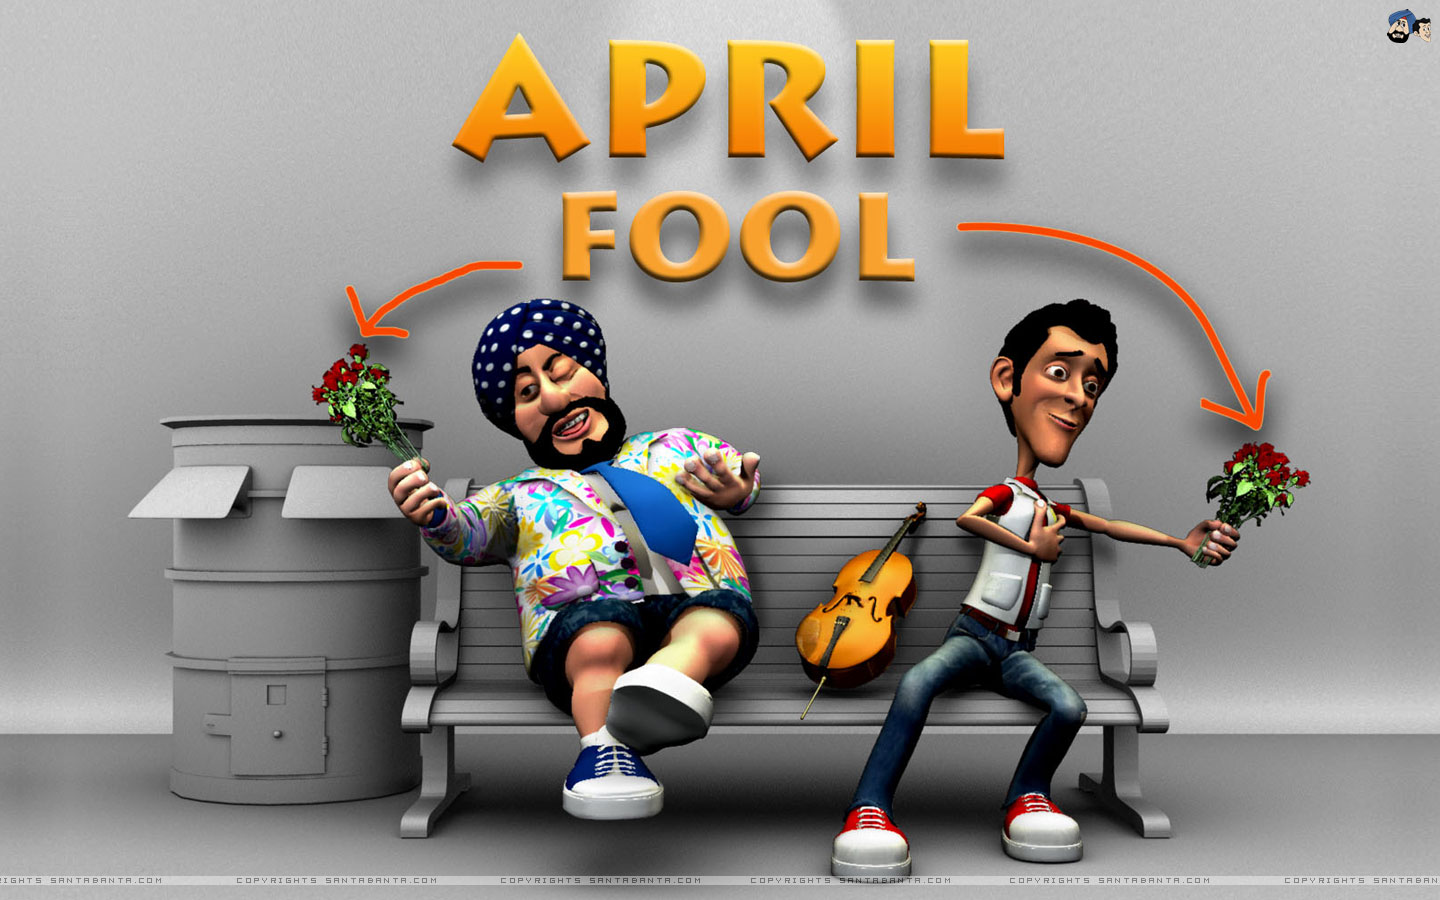 1st April Fool's Day Image